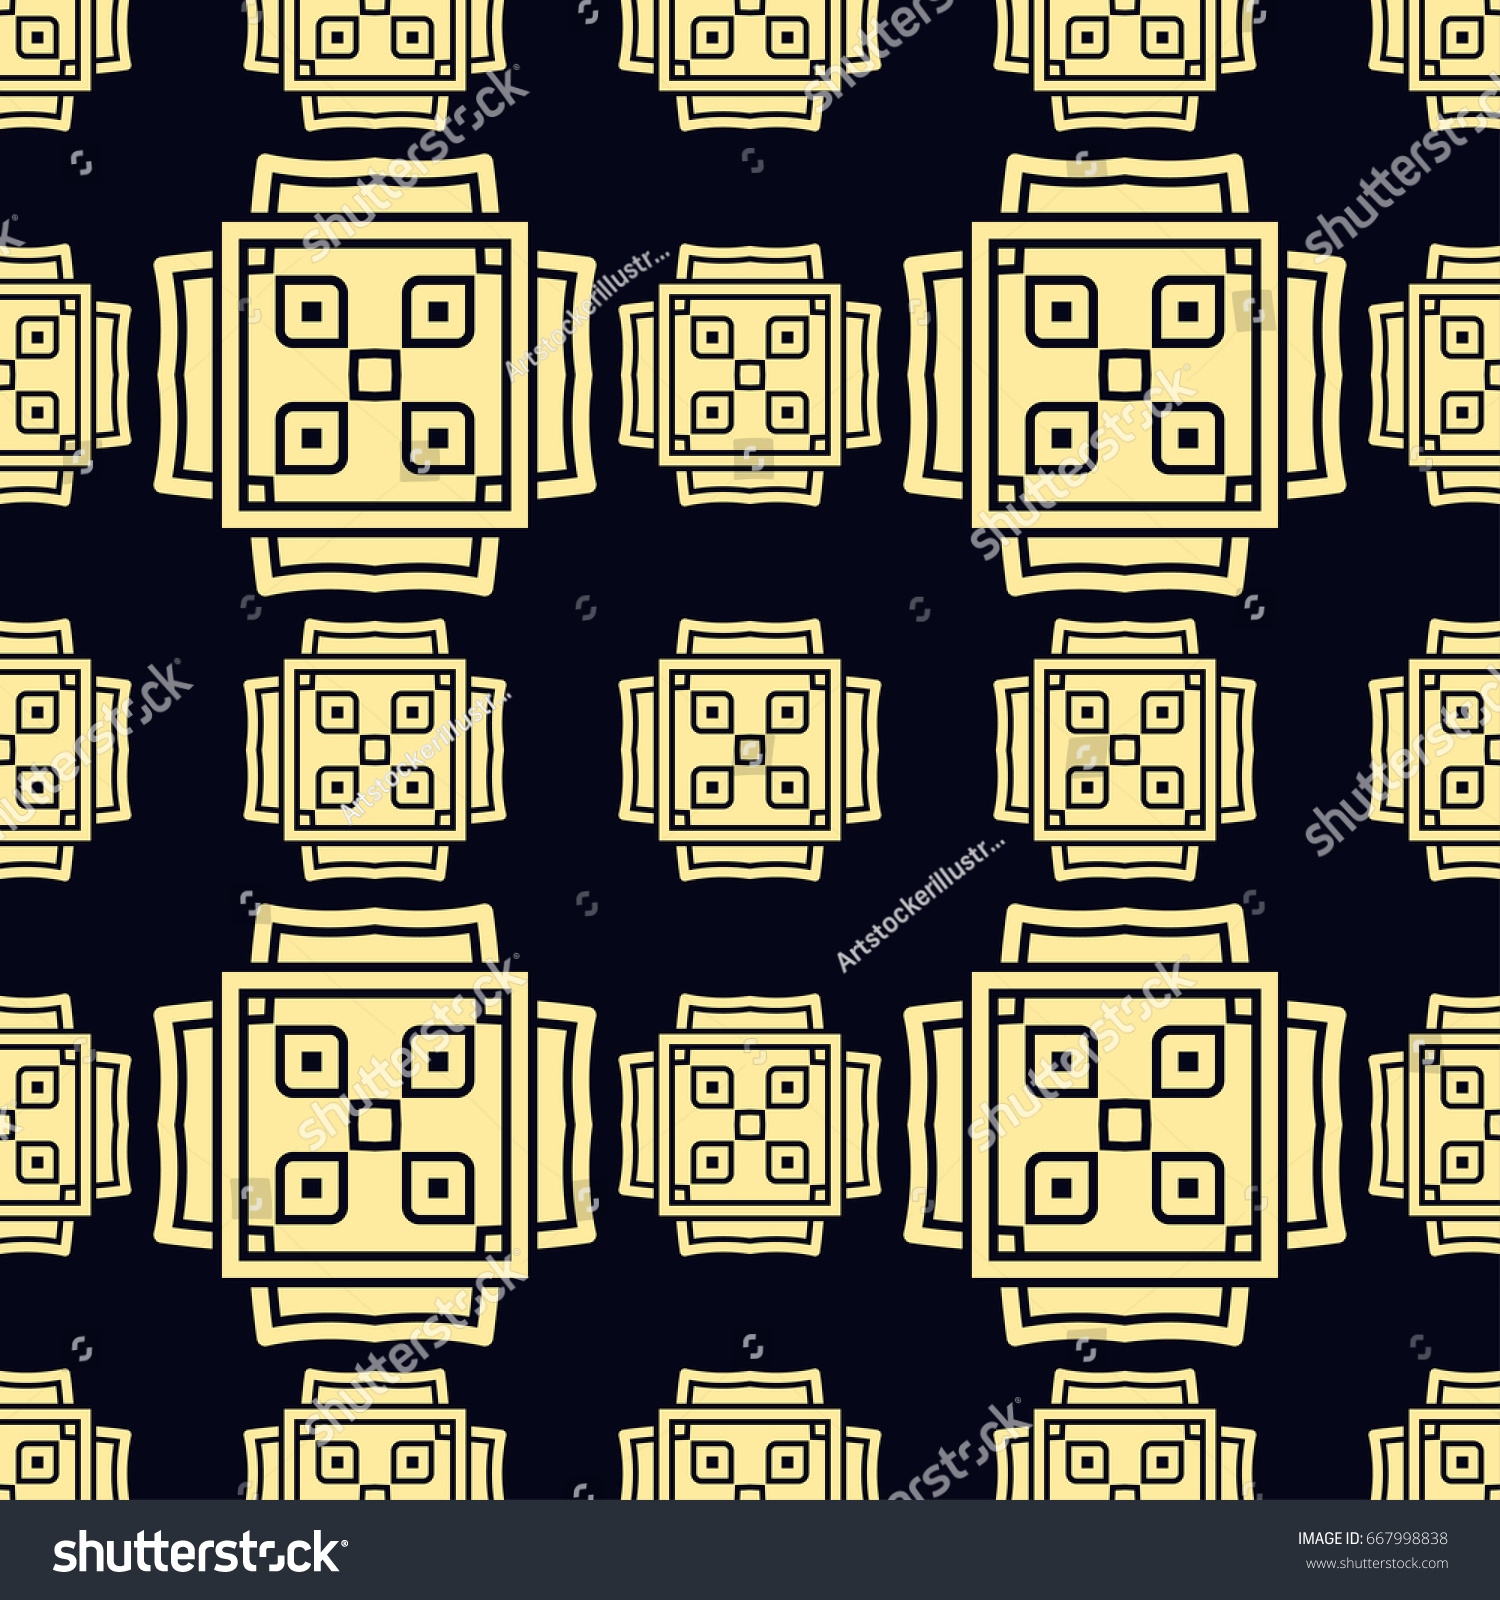 Seamless vintage wallpaper pattern. Ornamental decorative background.  Vector template can be used for design of wallpaper, fabric, oilcloth,  textile, ...